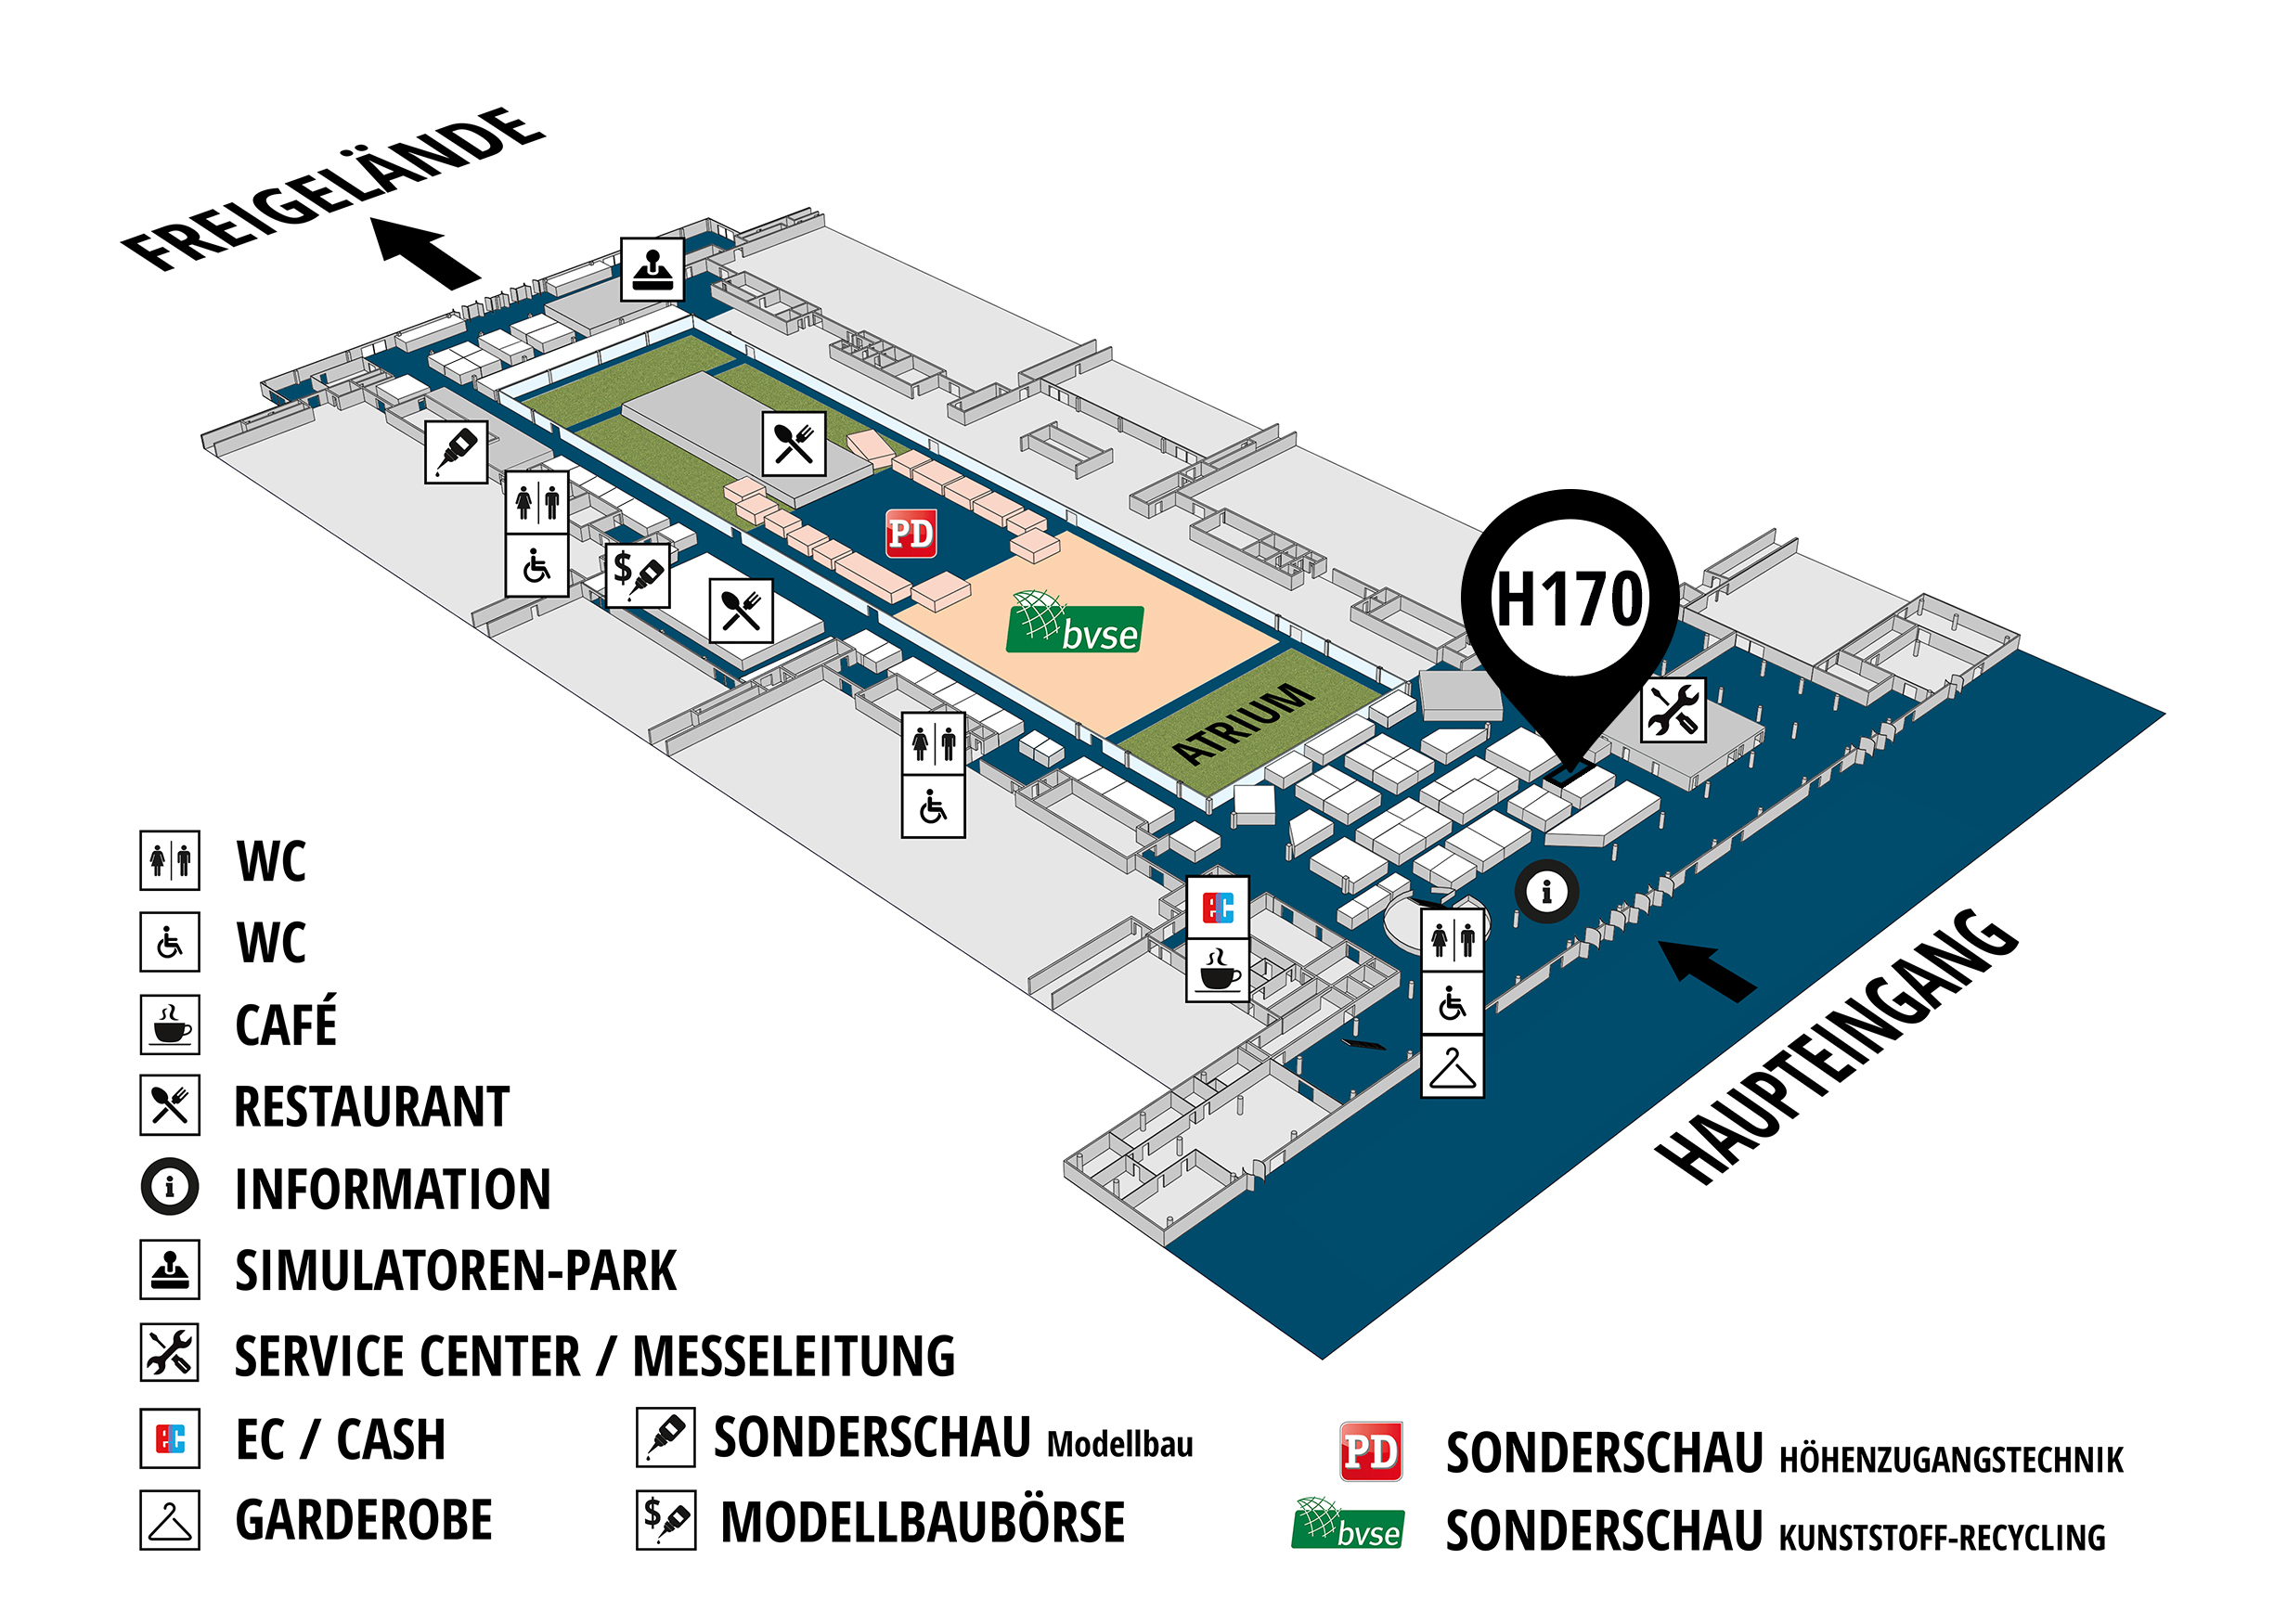 RecyclingAKTIV & TiefbauLIVE 2019. The Demonstration Trade Fairs ||Demonstration trade fair for waste removal and recycling. Demonstration trade fair for road construction and civil engineering. hall map (Visitors circuit): stand H170